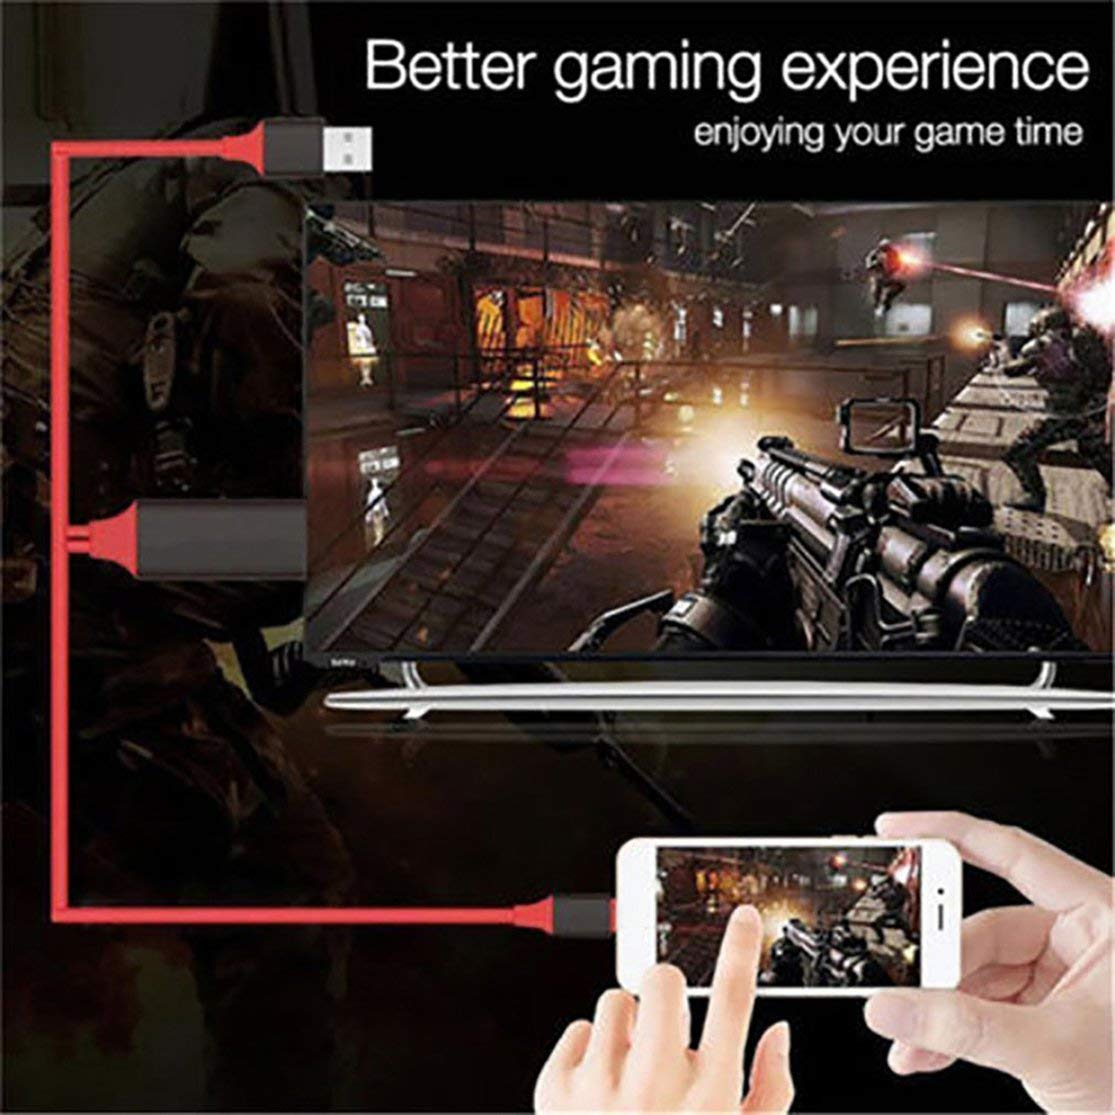 1080P HDTV Adapter HDMI Cable Male to USB 2.0 Man /& Woman HDMI HD Video Converter Code for iPhone Smartphone Android Phones